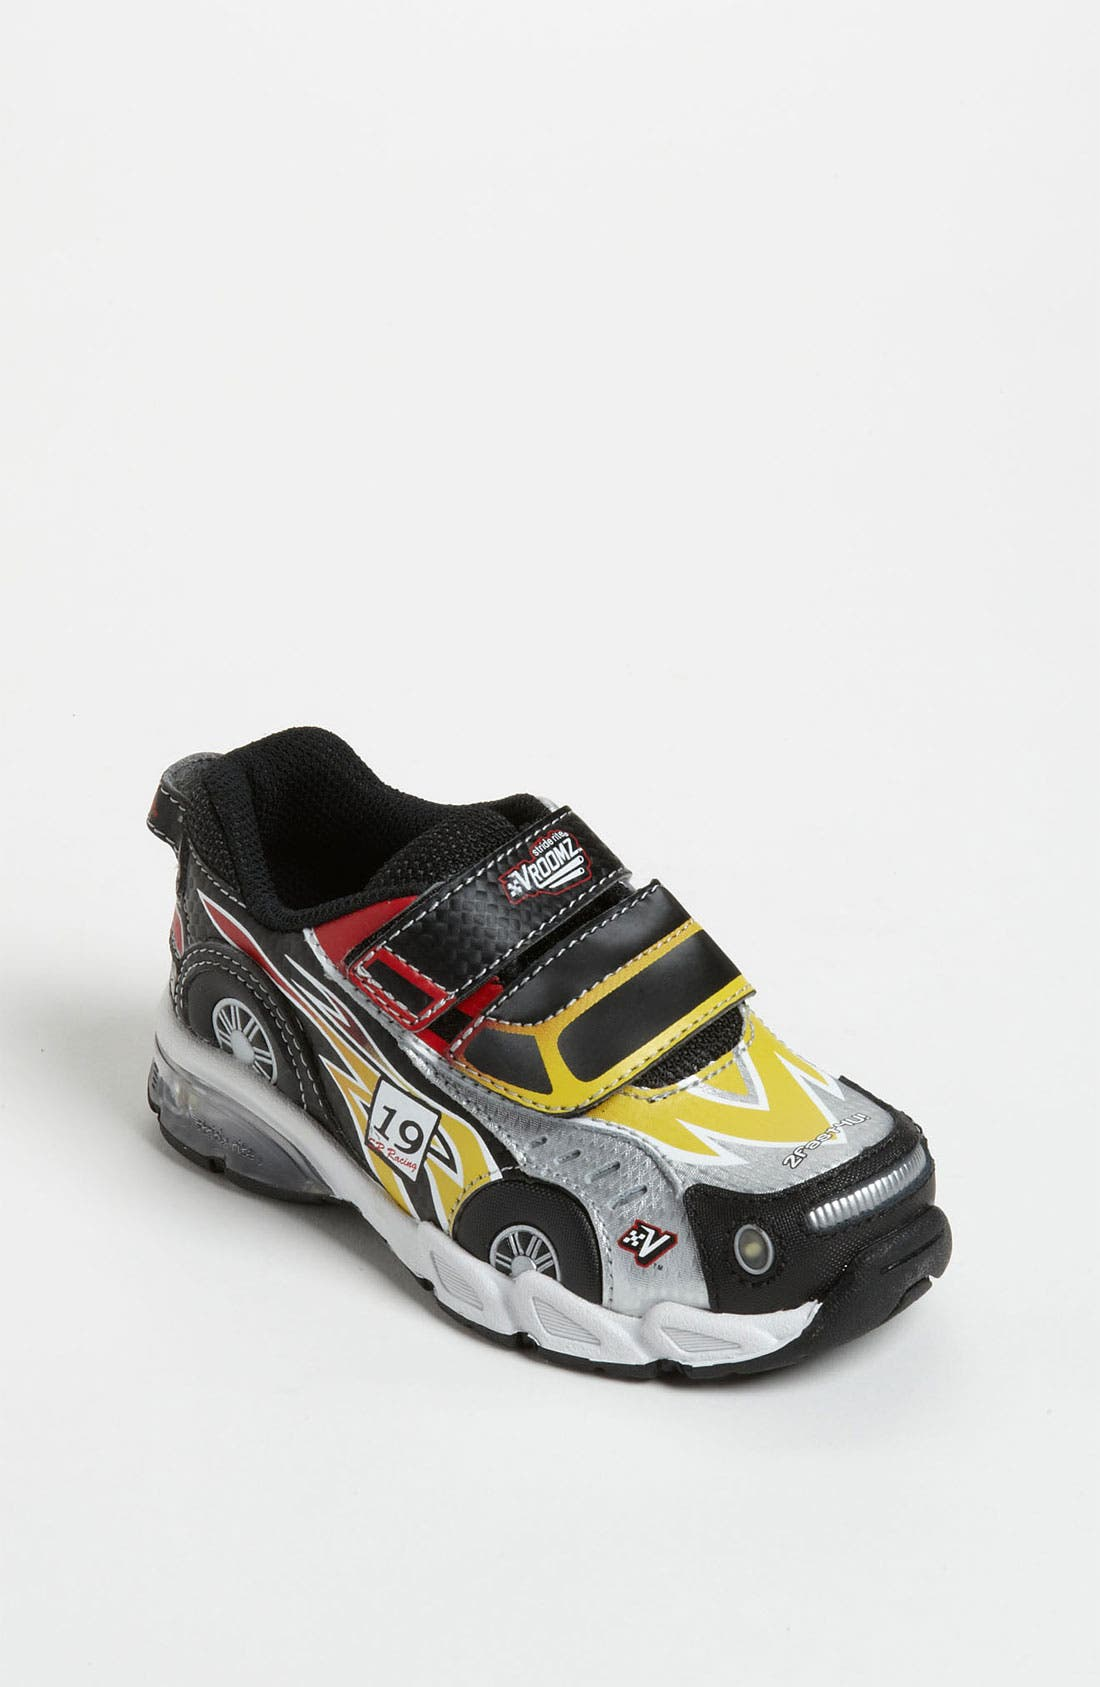 Alternate Image 1 Selected - Stride Rite 'Vroomz™' Sneaker (Toddler)